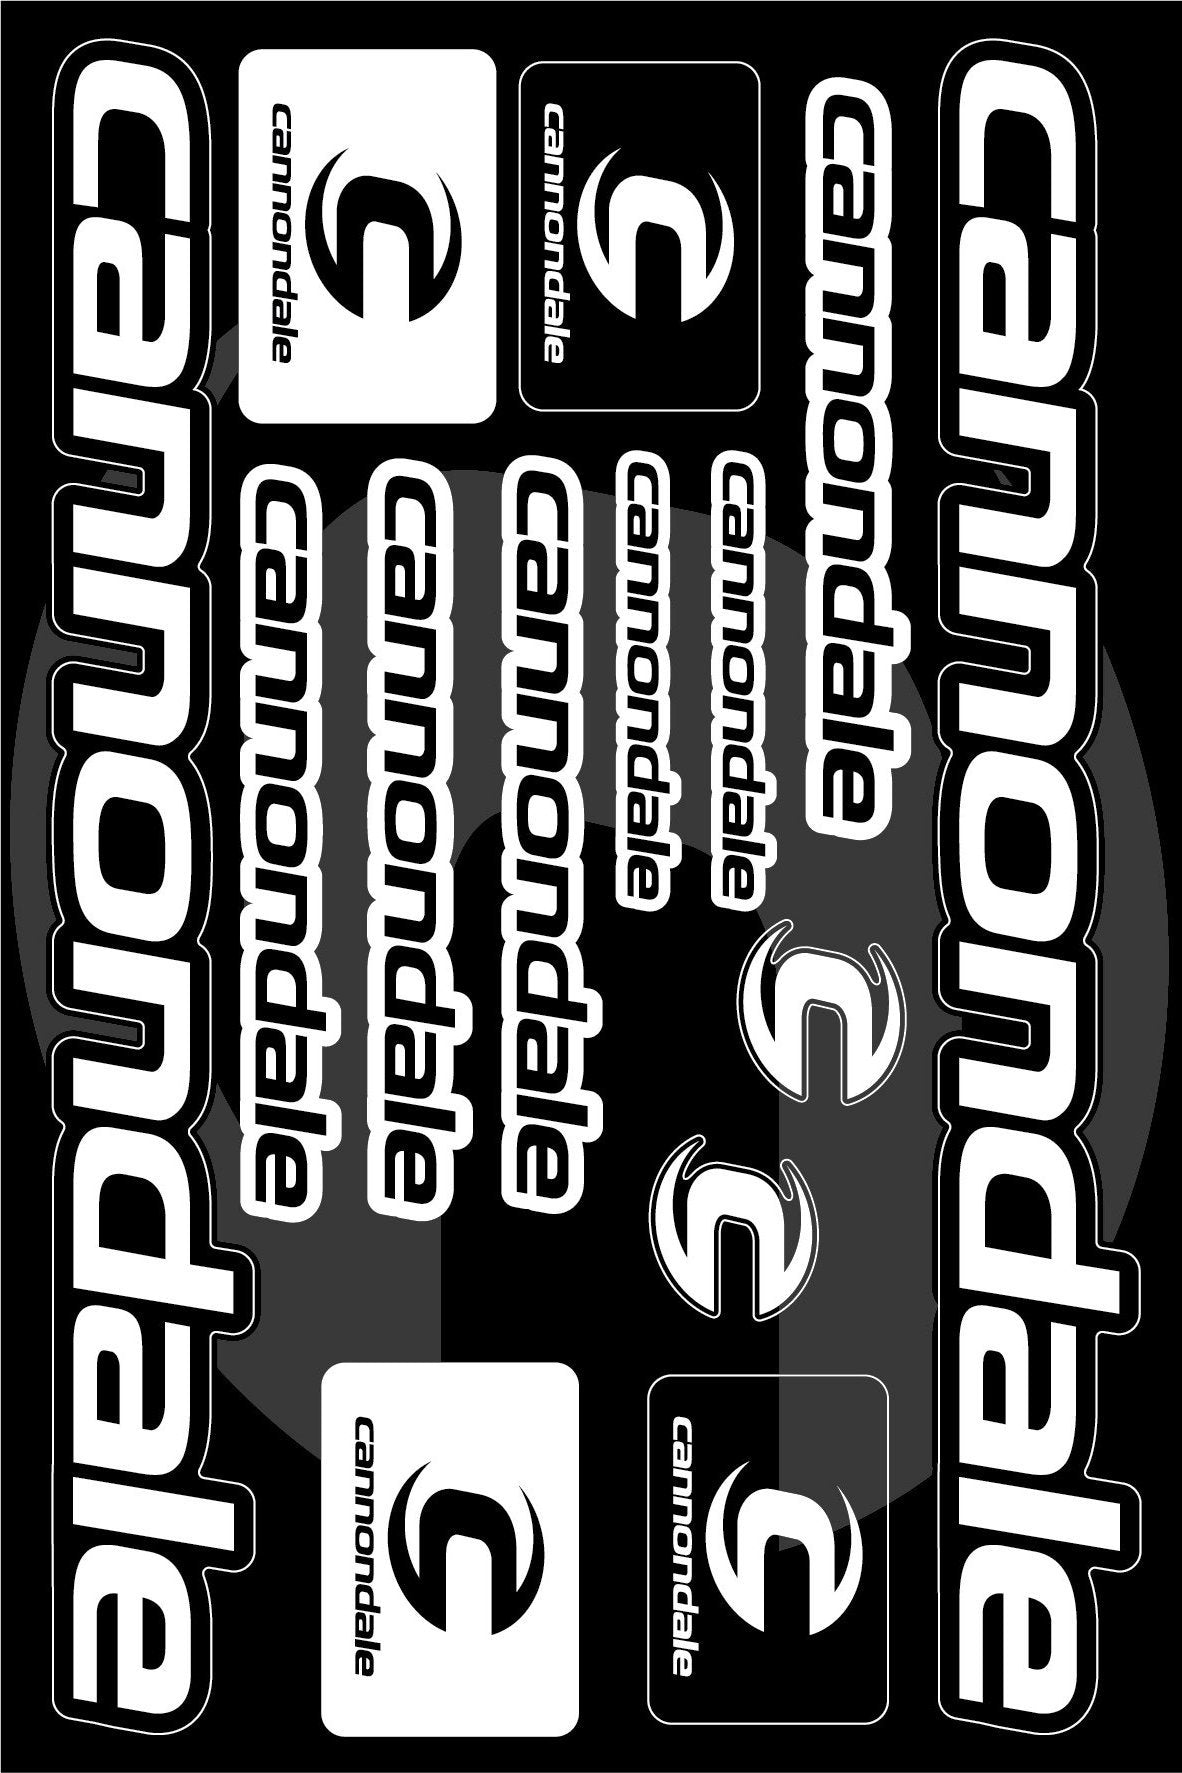 Cannondale Self Adhesive Sticker For A Bike Black White Art